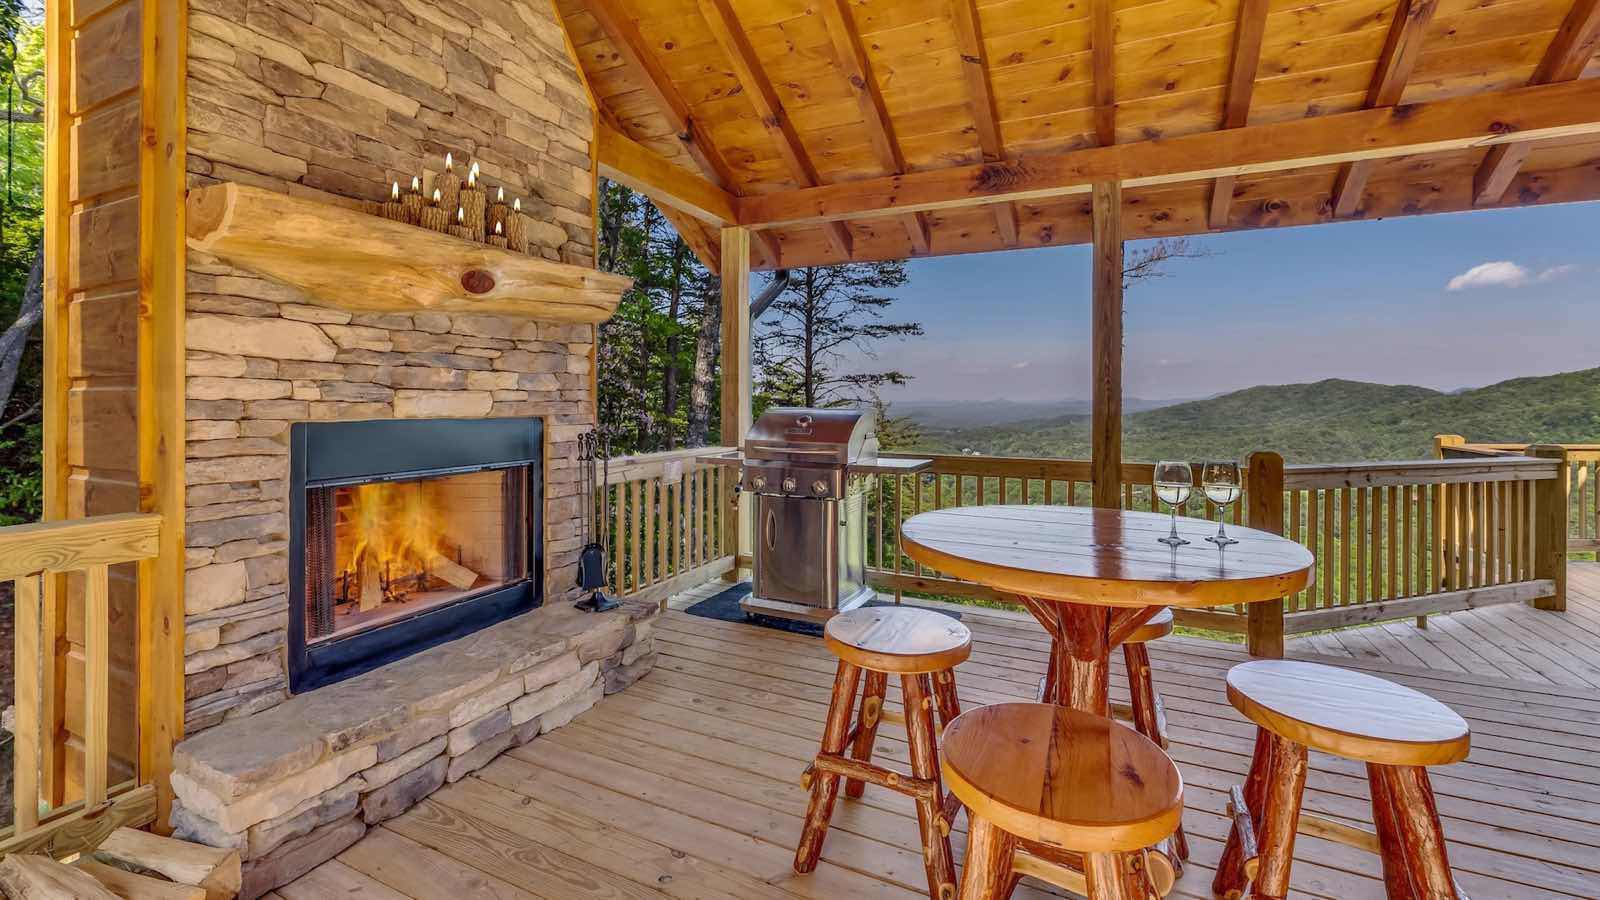 Glass Lodge Blue Ridge Ga : Endless view lodge rental cabin blue ridge ga